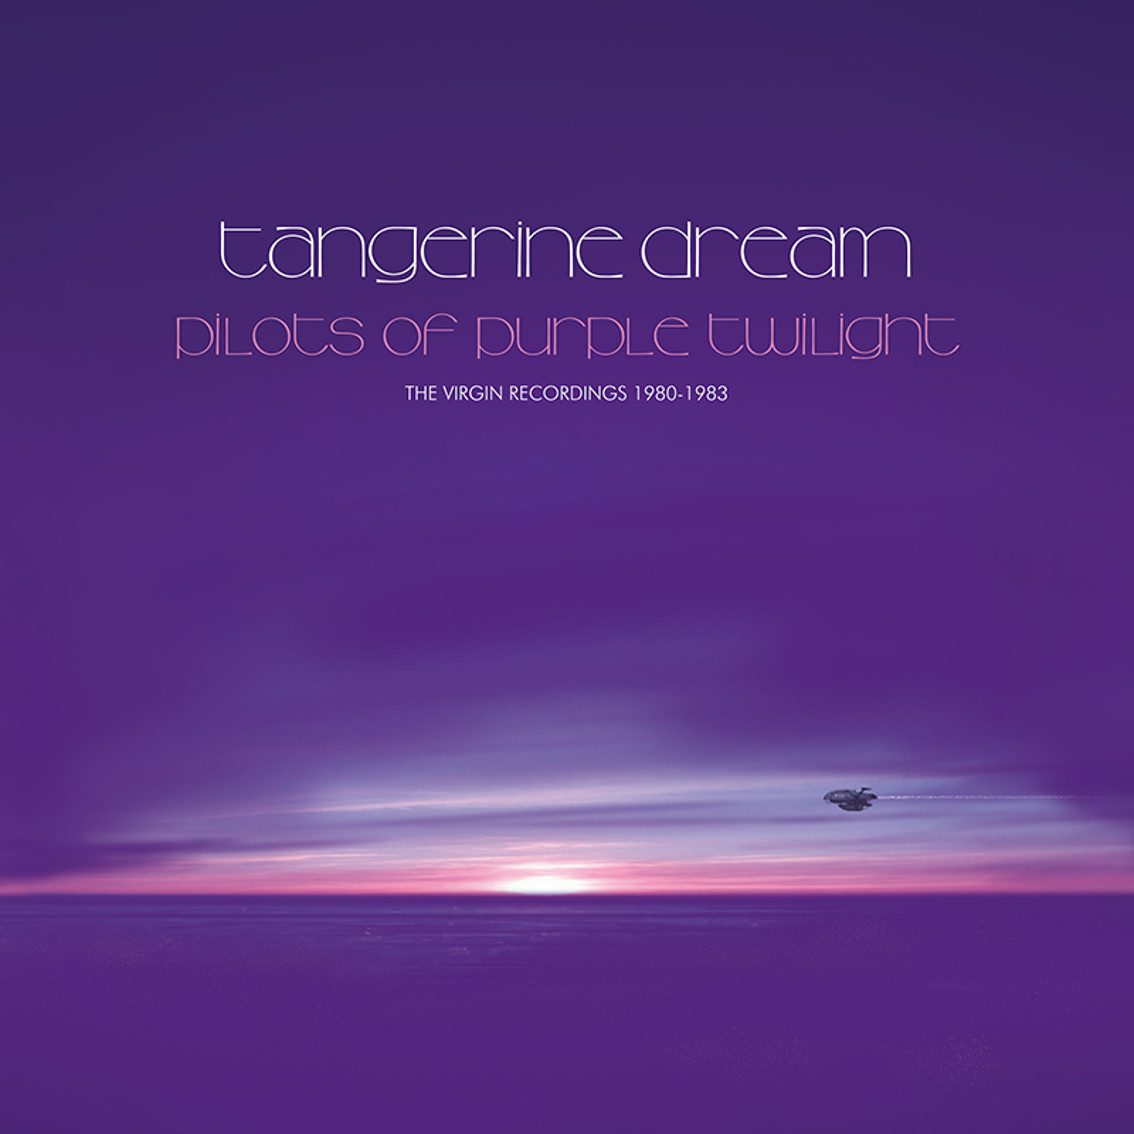 Tangerine Dream to release new 10 x CD box set including classic albums + previously unreleased material